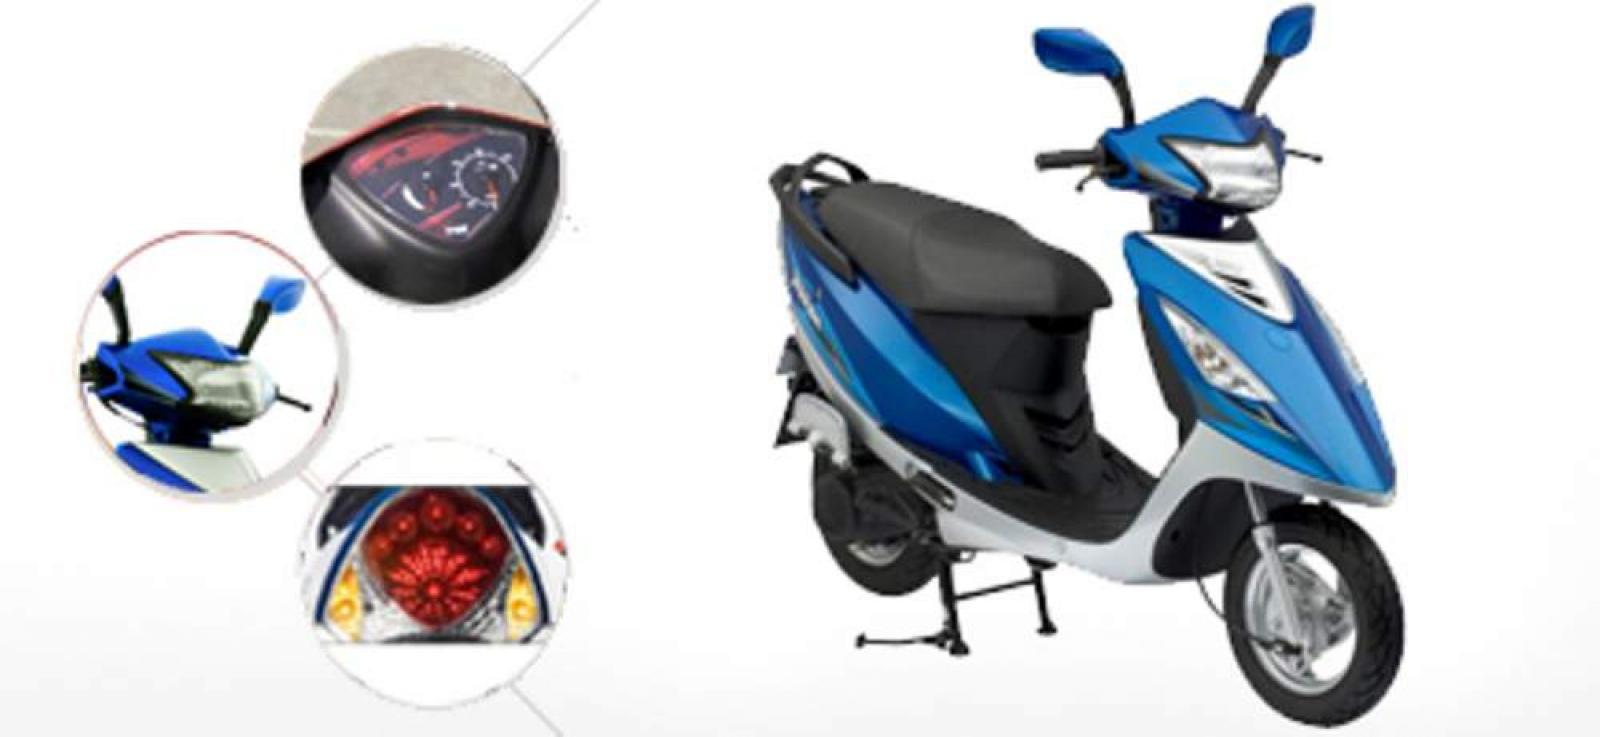 scooty streak Tvs scooty streak insurance: compare reviews online & save upto 60% on tvs scooty streak insurance premiums renew your two wheeler insurance for upto 3 yrs from top bike insurers.